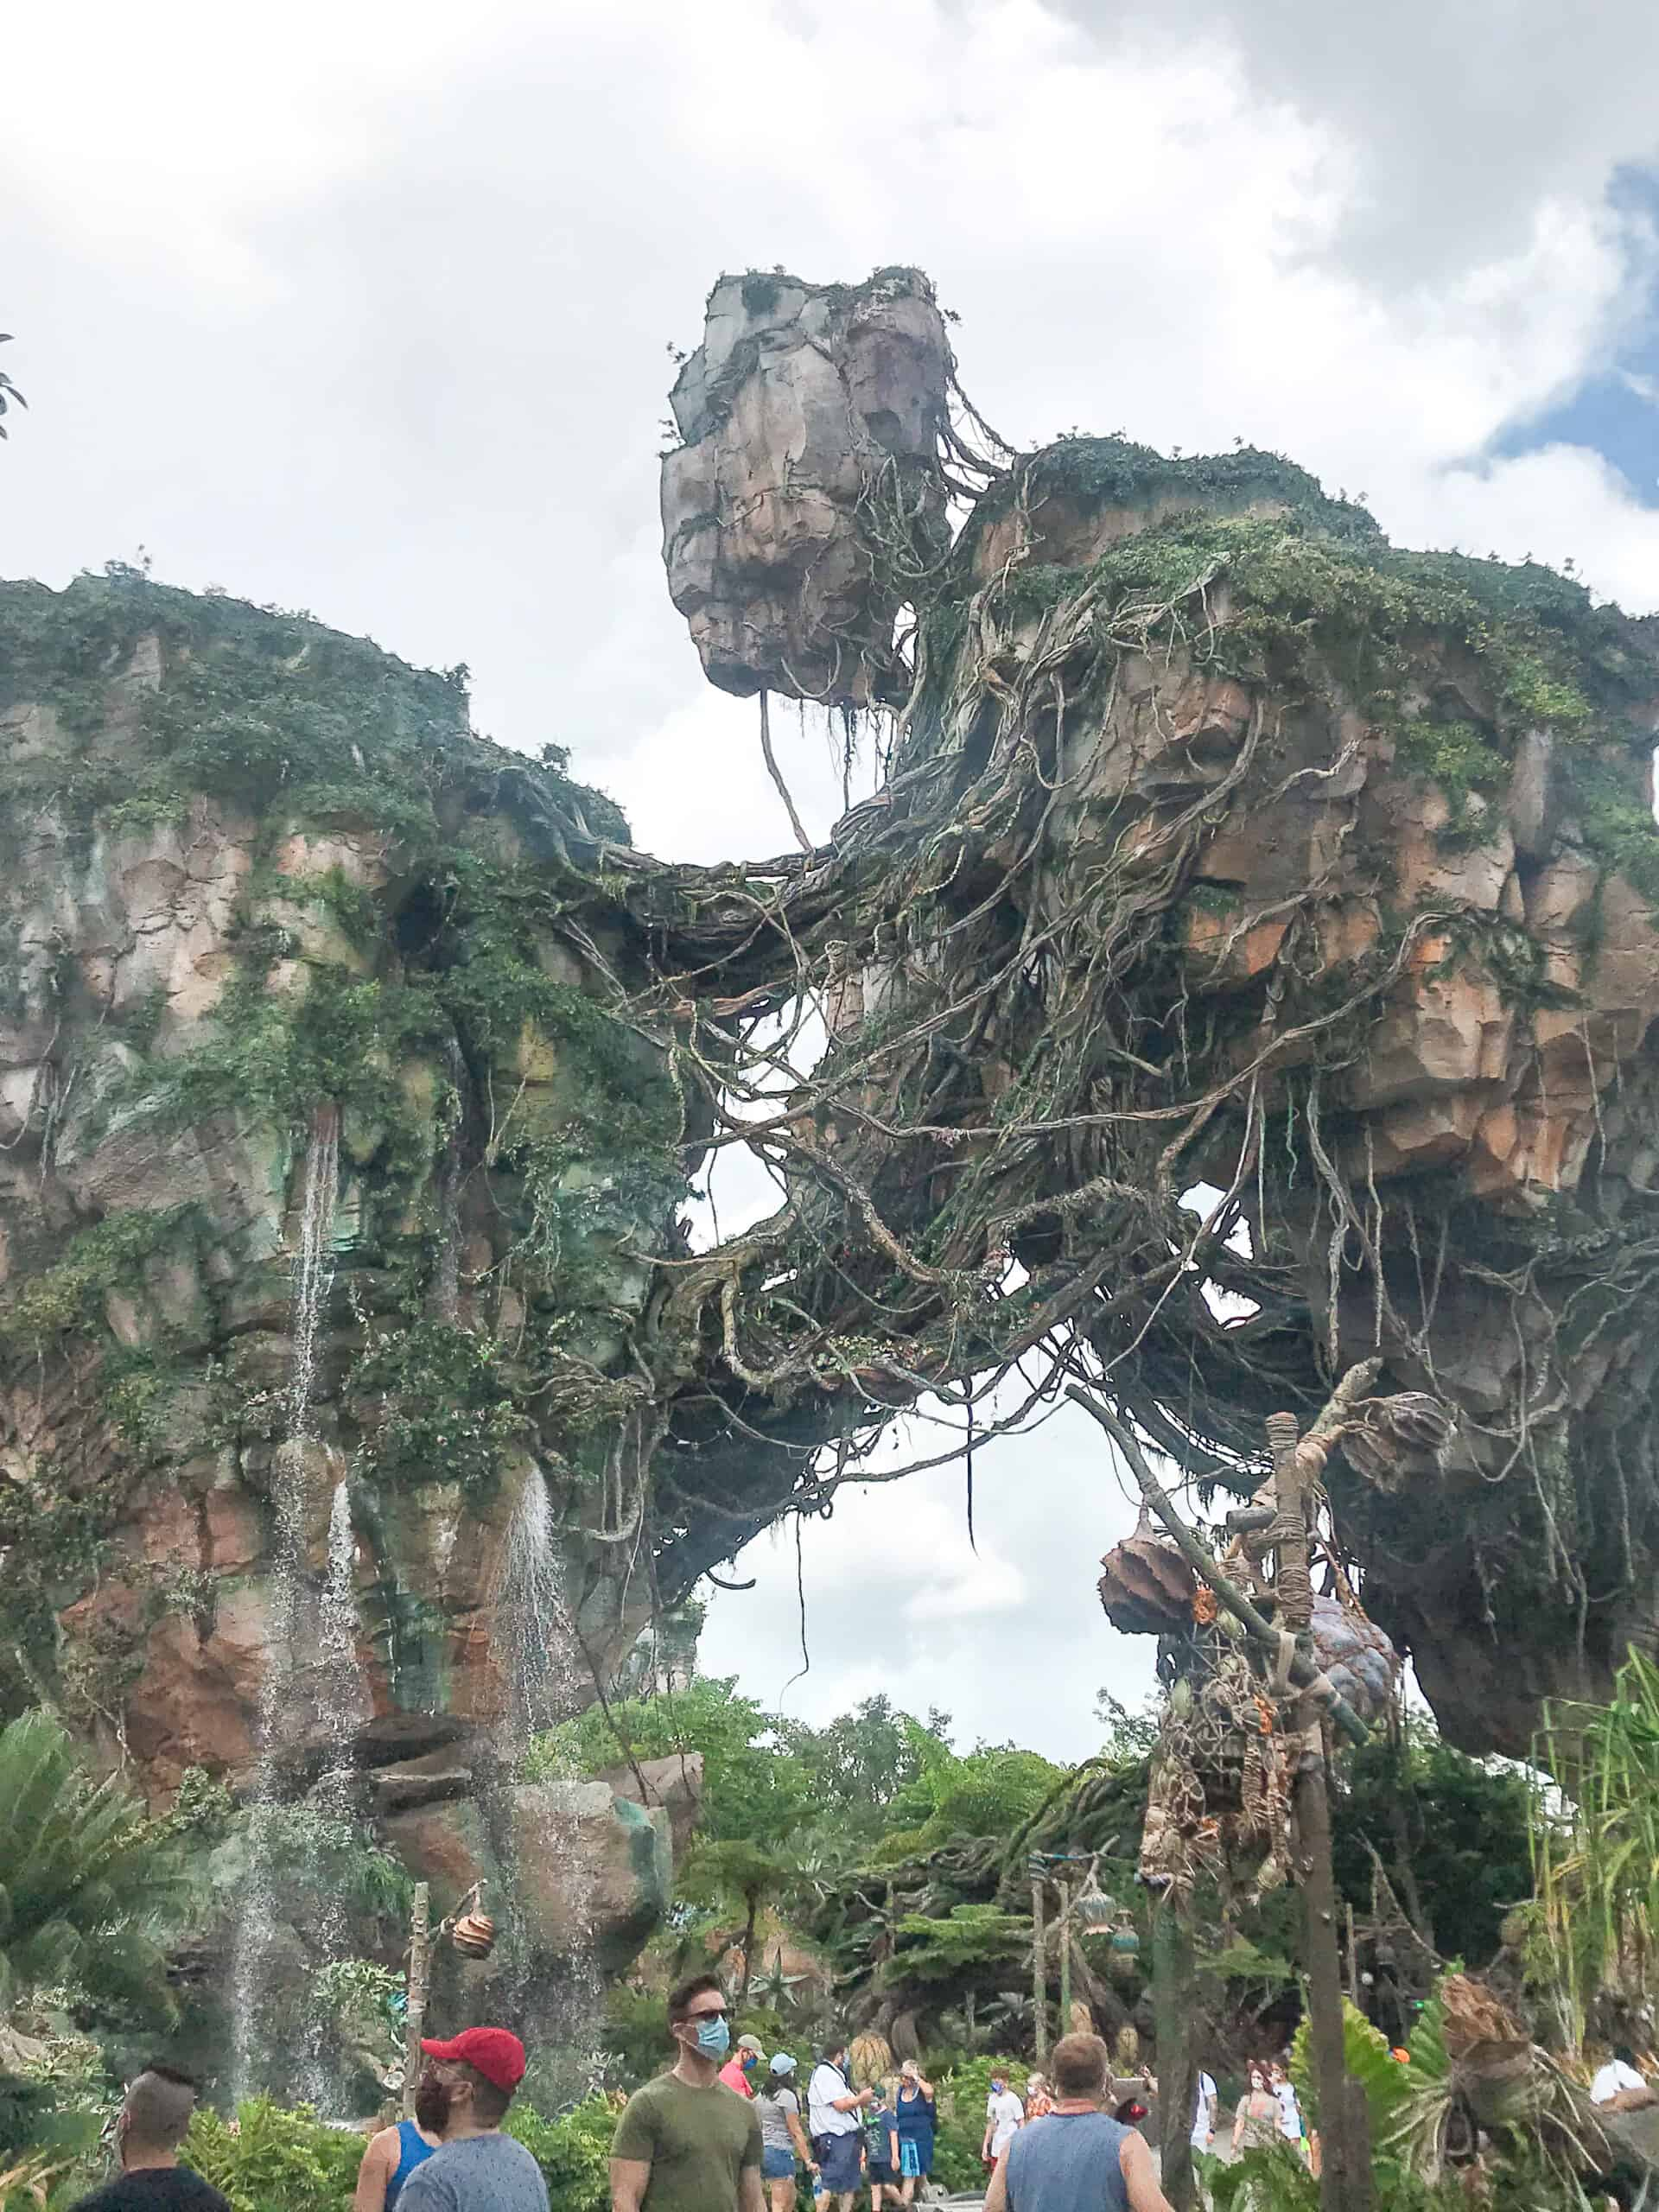 Green landscapes from Pandora World of Avatar at Disney's Animal Kingdom